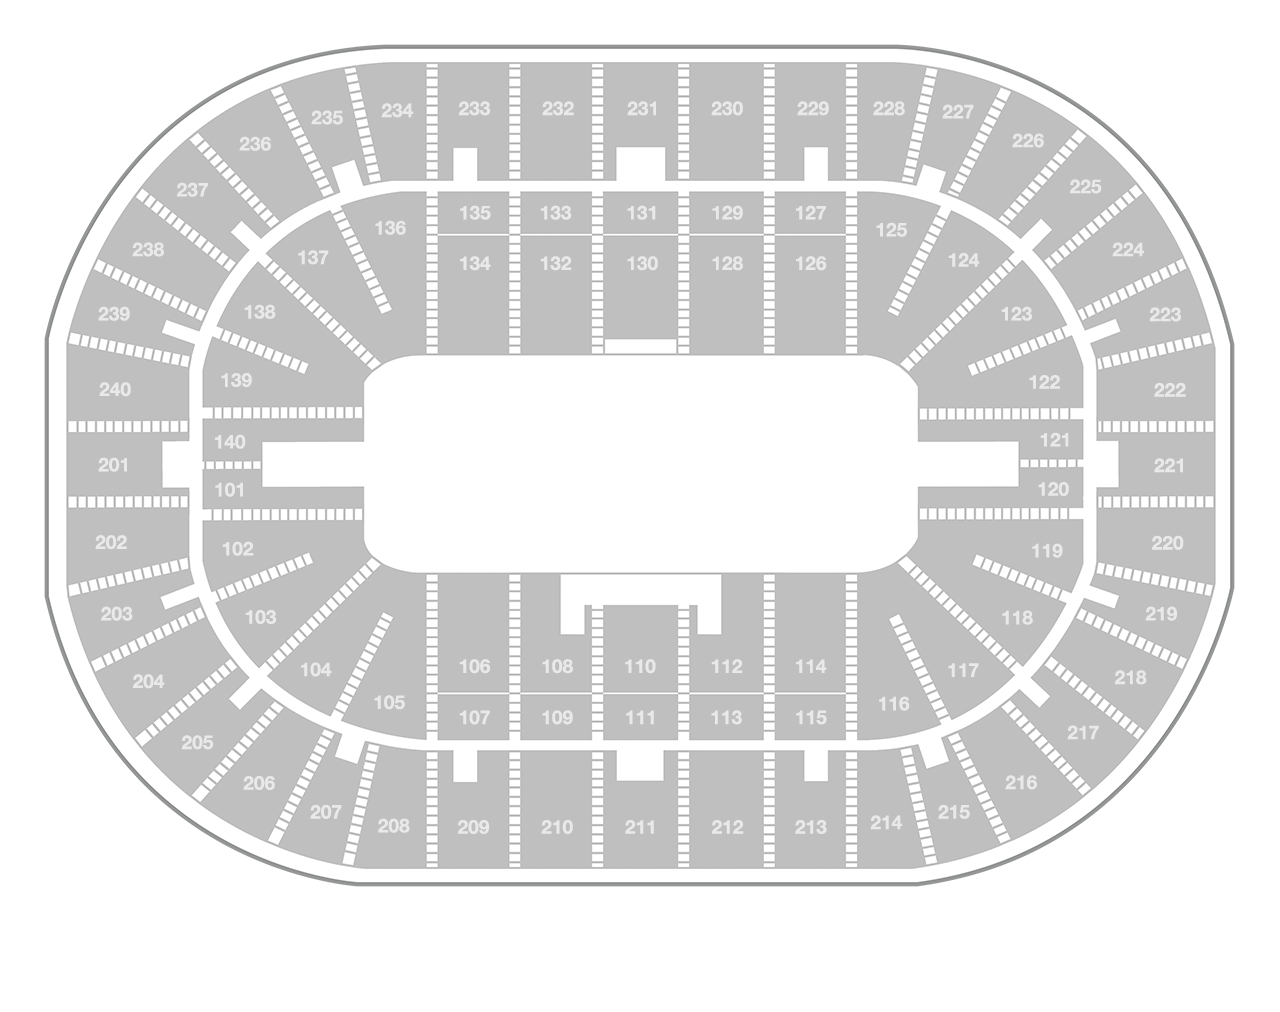 Rogers arena seating plan related keywords amp suggestions rogers - Rogers Arena Seating Plan Related Keywords Amp Suggestions Rogers 44